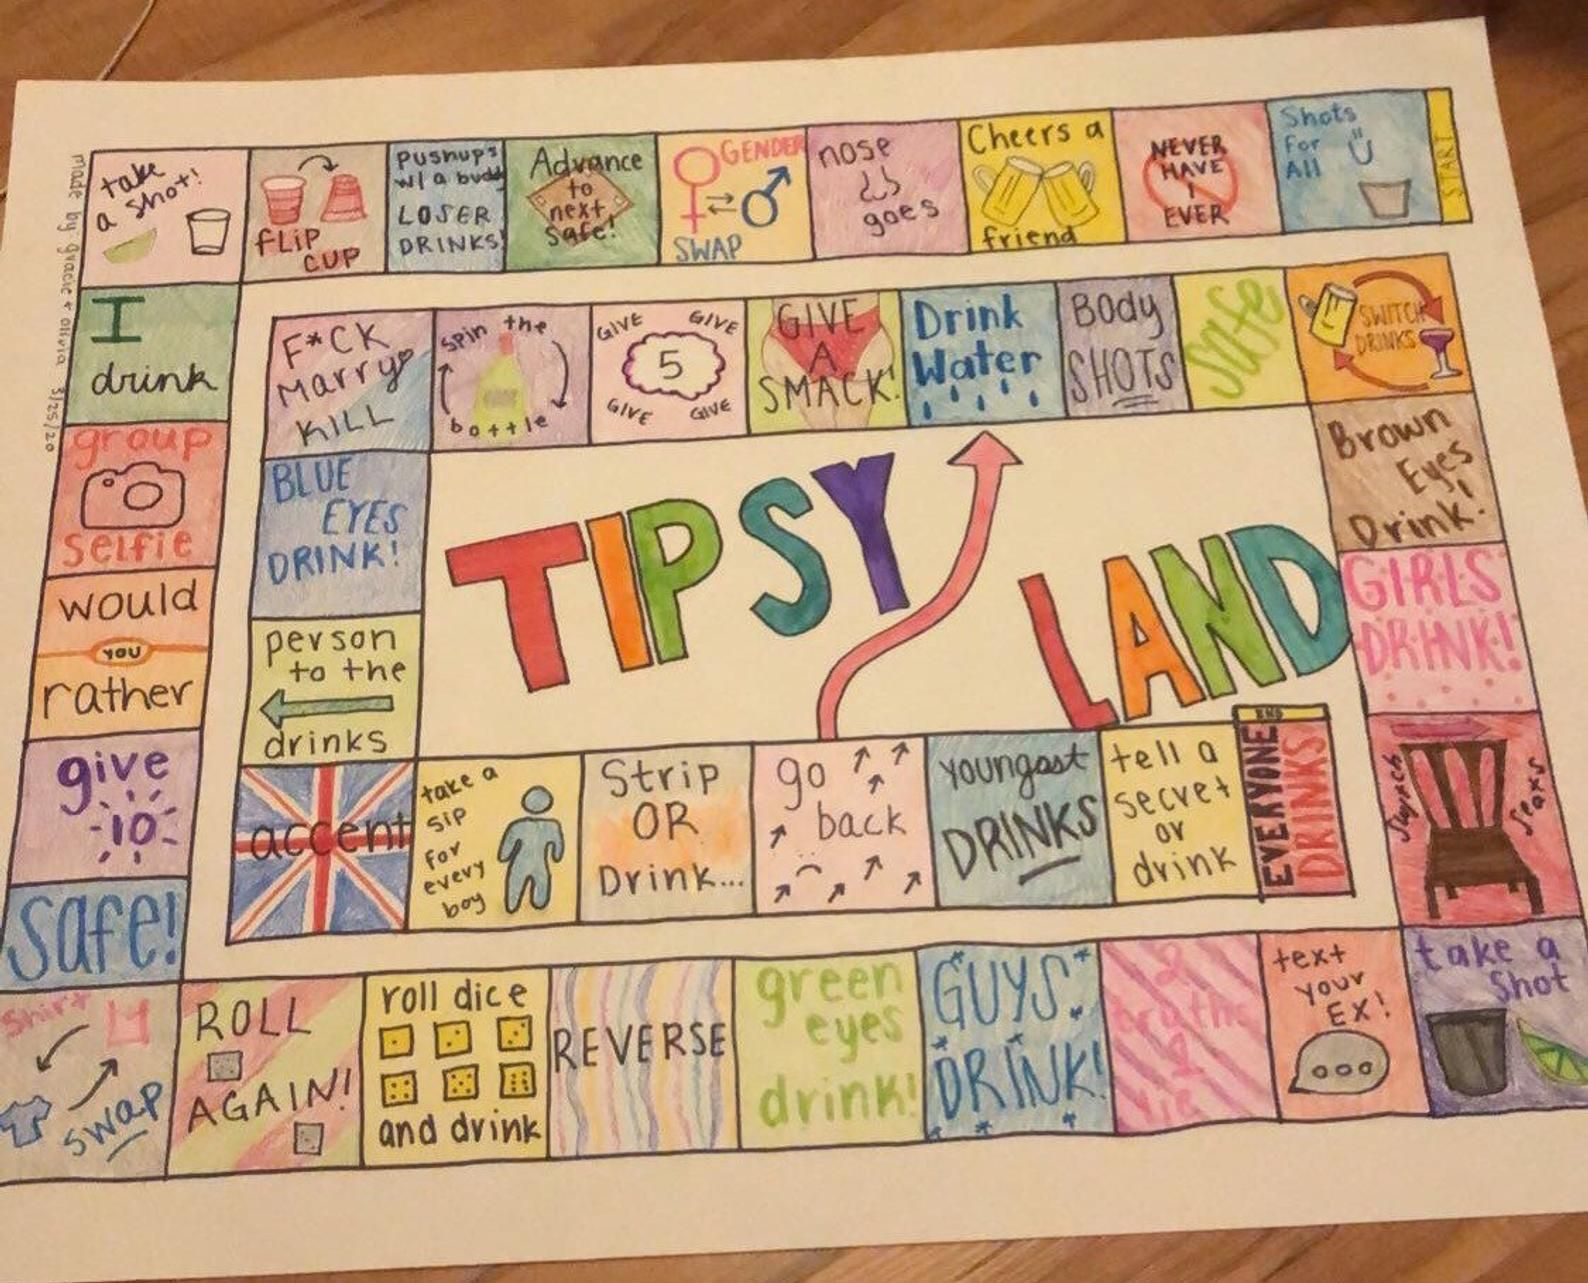 A G O Tipsy Land Etsy Diy Party Games Girls Night Drinking Games Sleepover Party Games